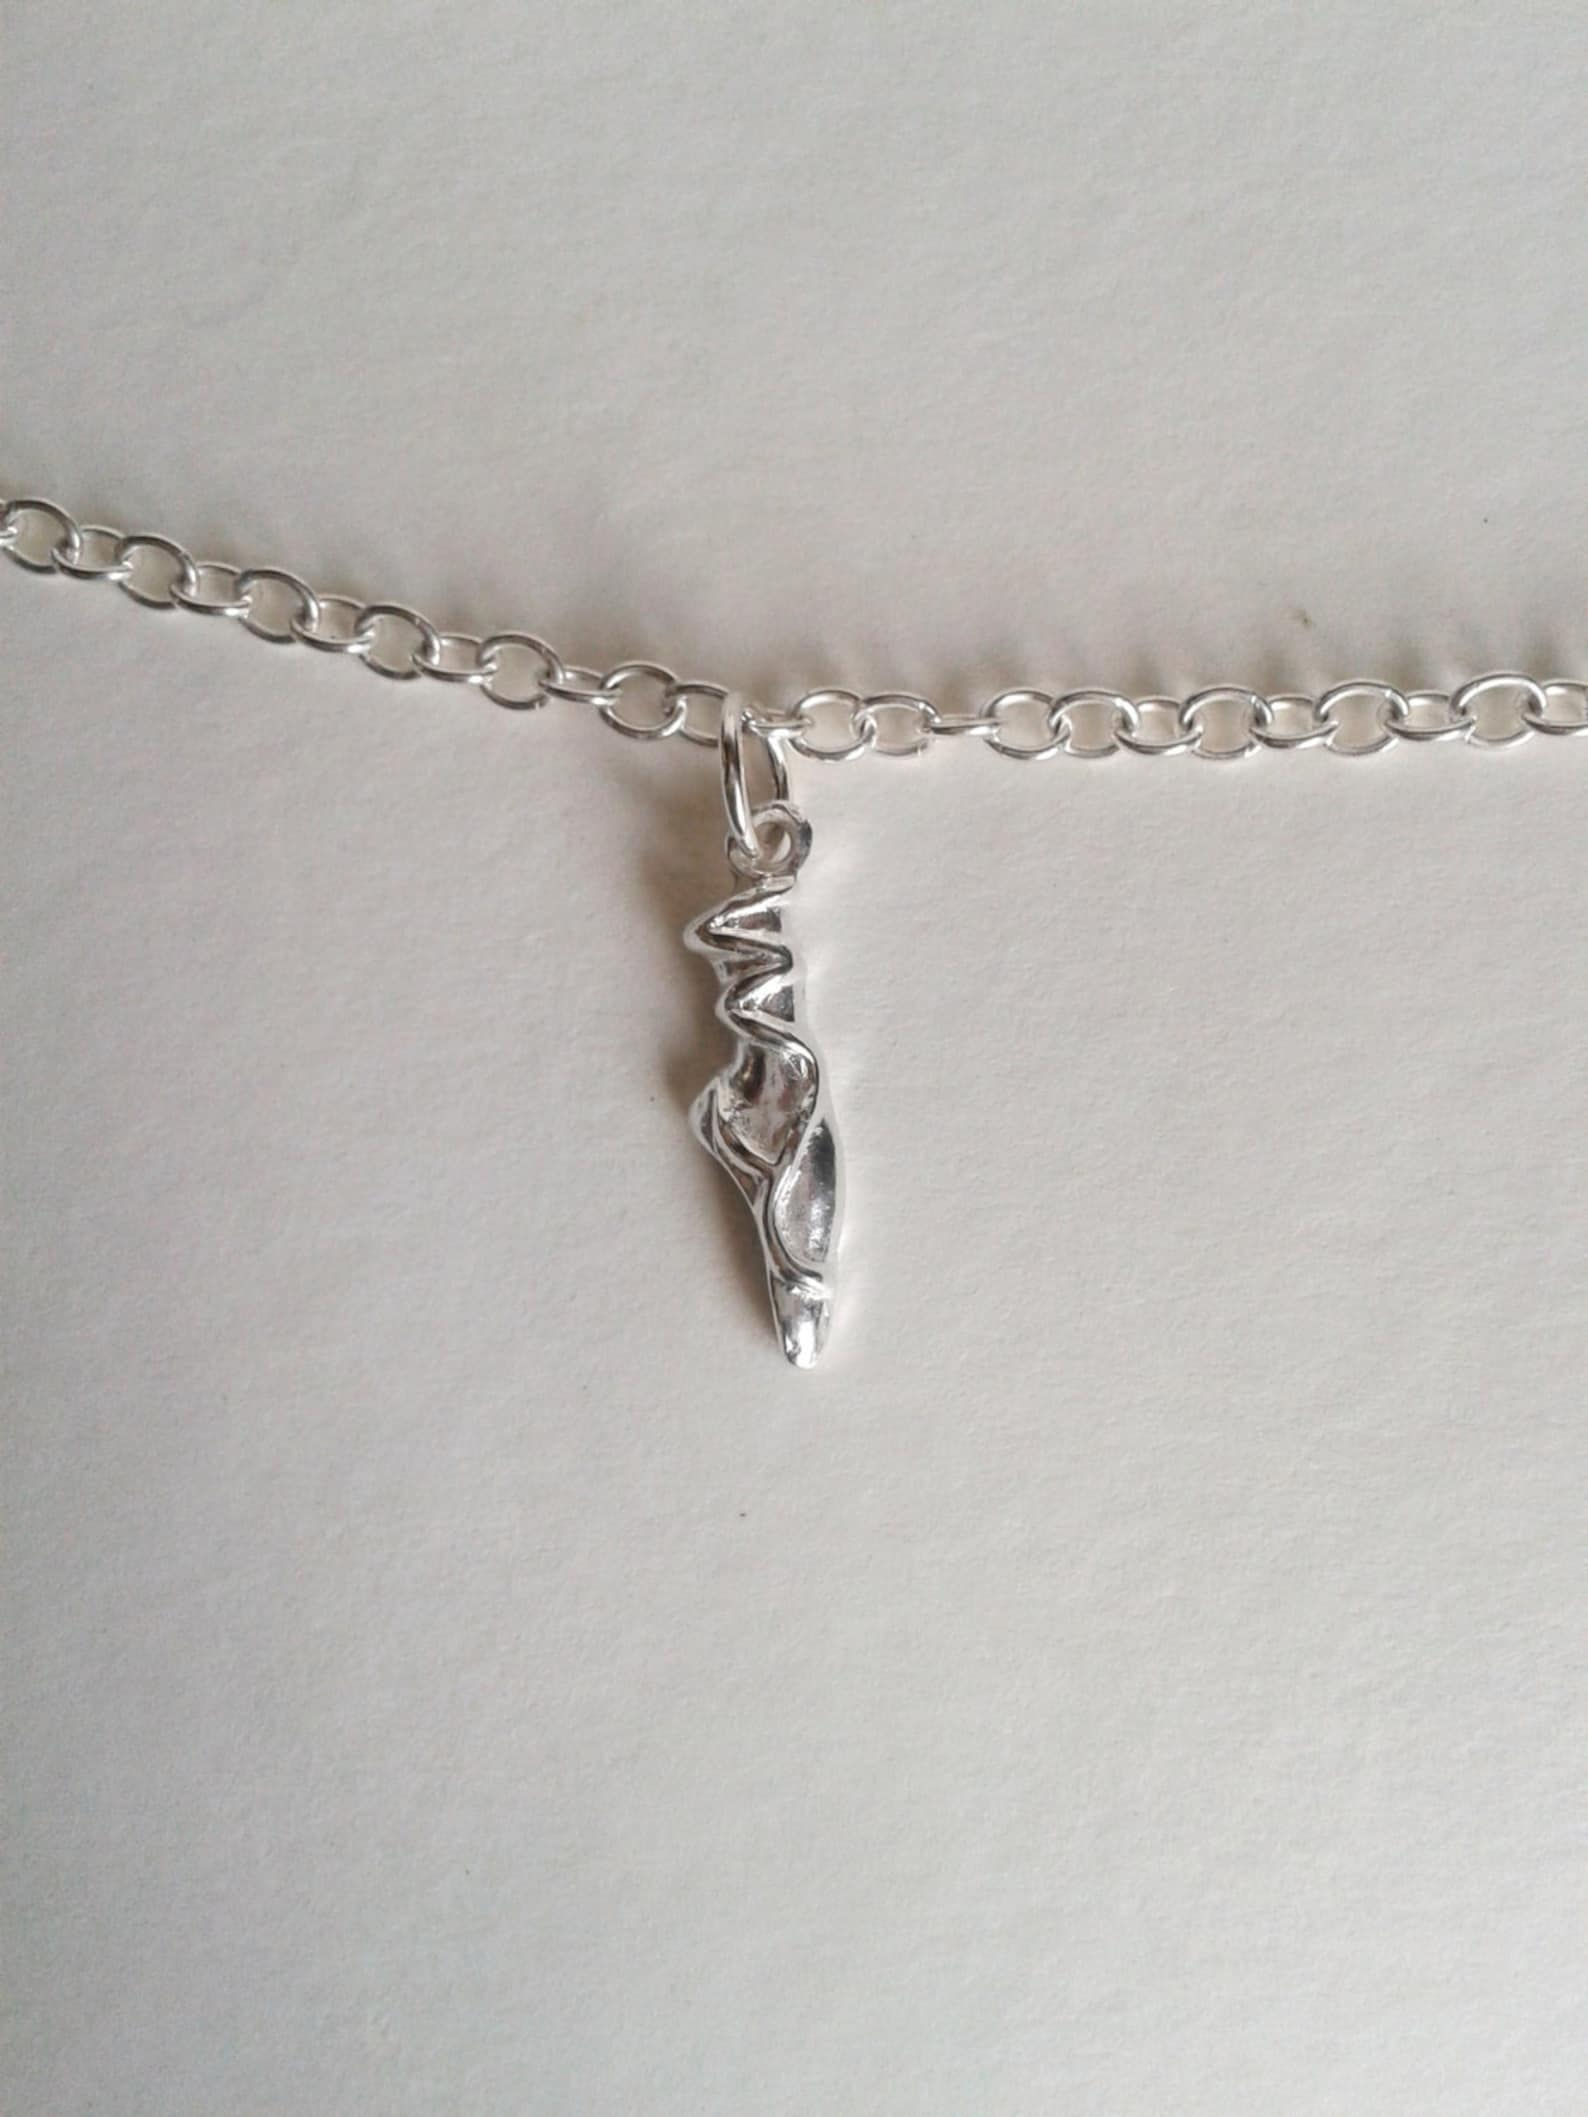 handmade ballet shoe charm, silver en-point ballet shoe on sterling silver bracelet, girls christening gift, dancers present, uk